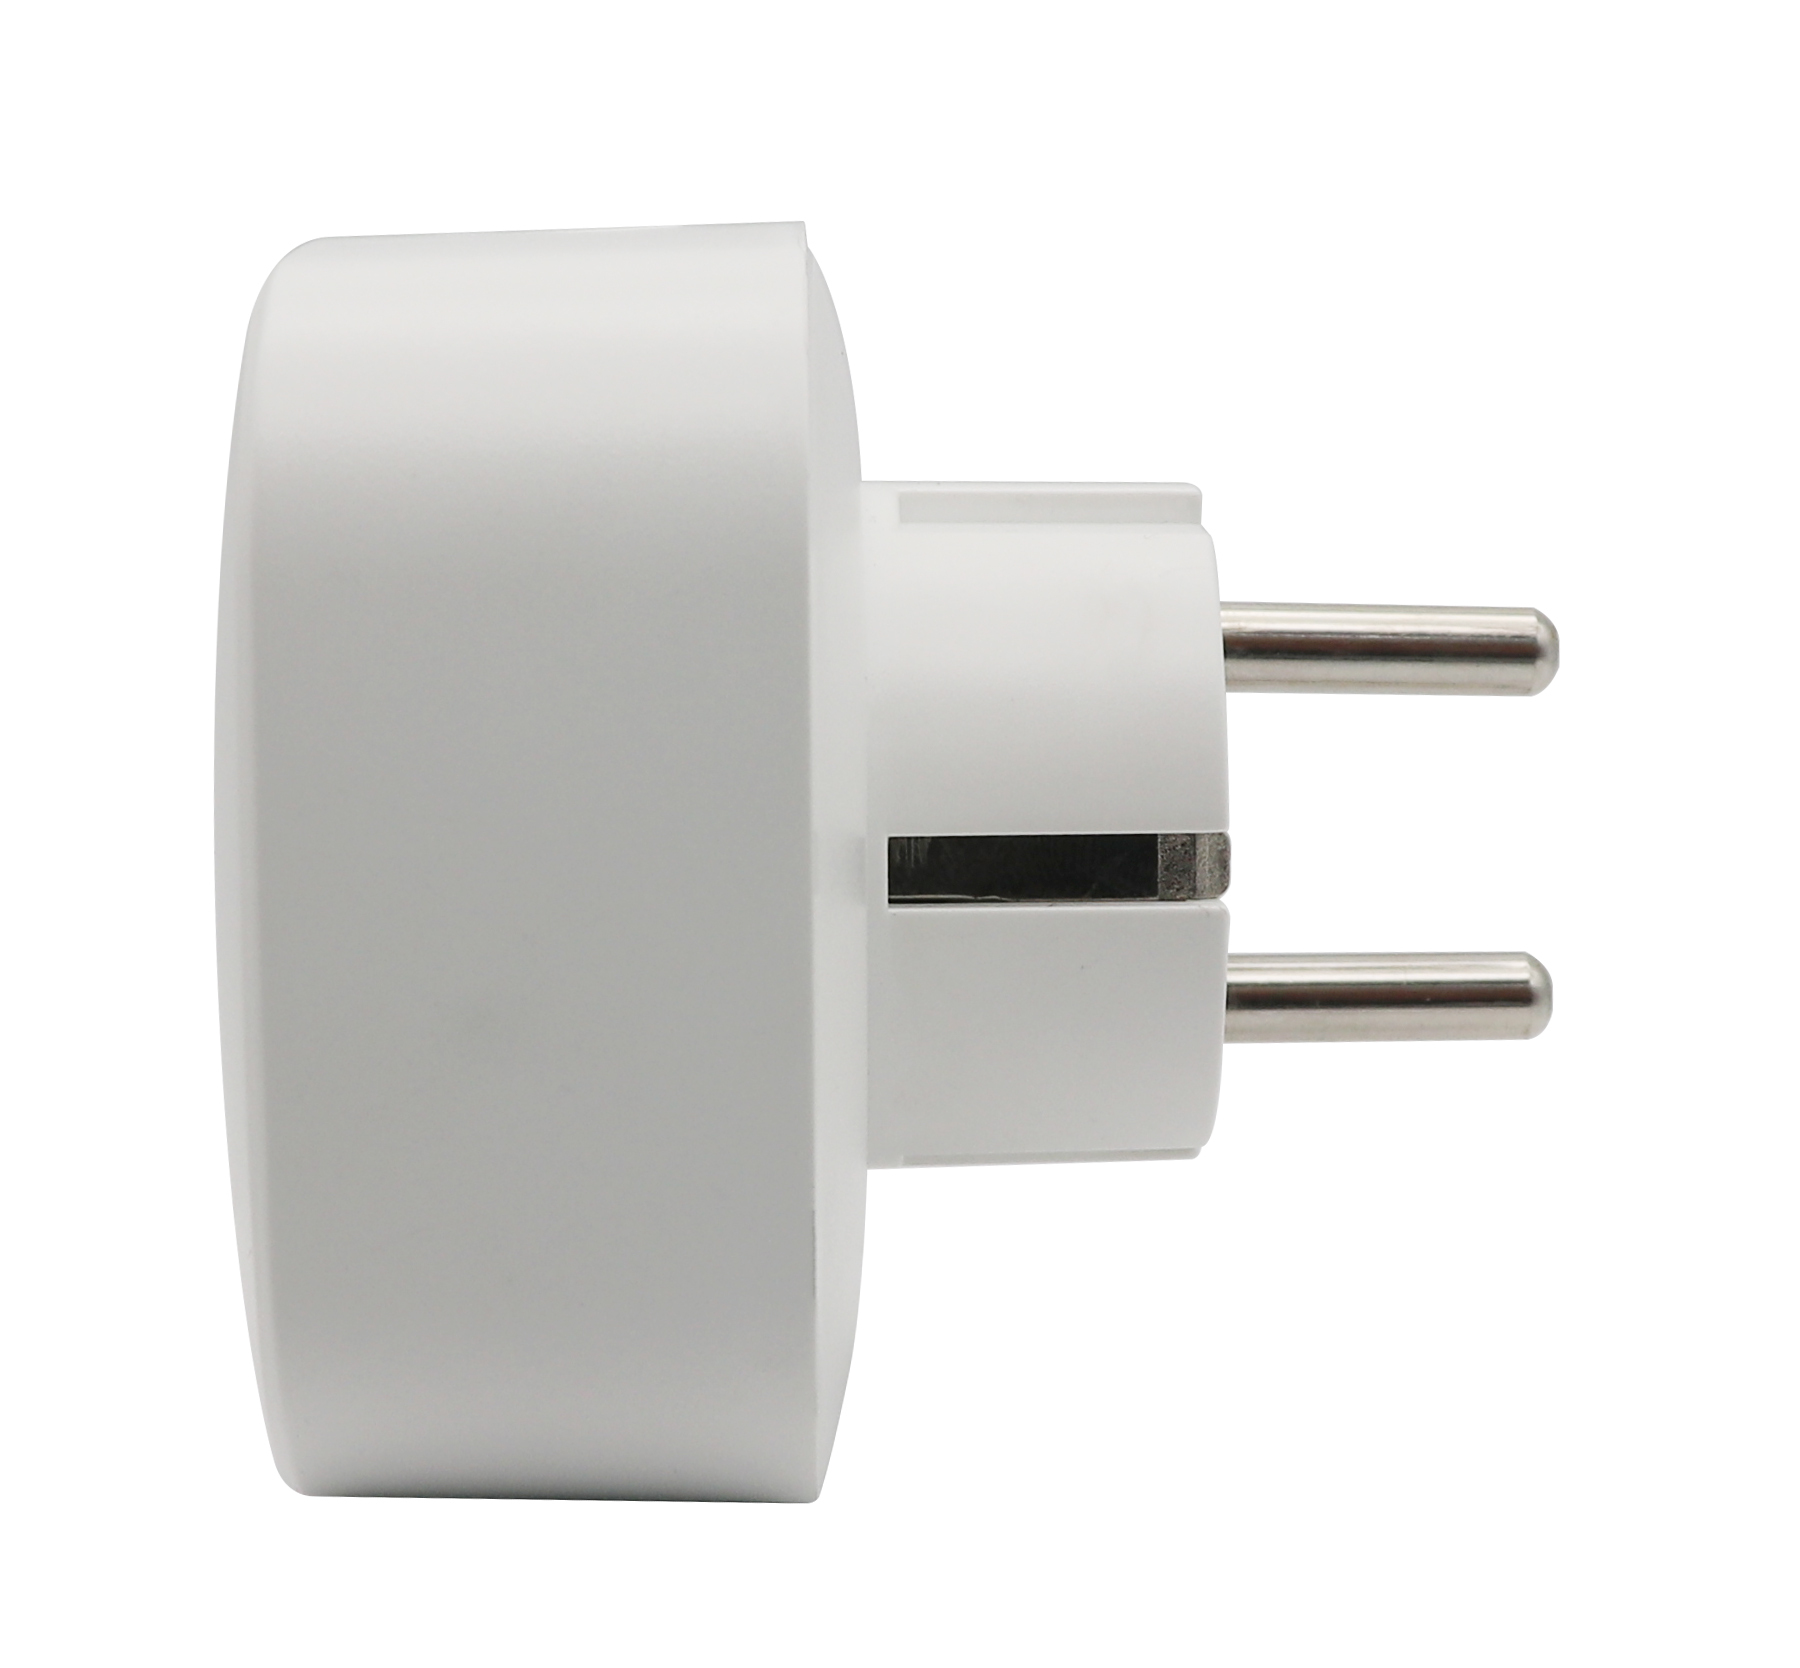 Enchufe inteligente estándar europeo WiFi Smart Plug SA-P202